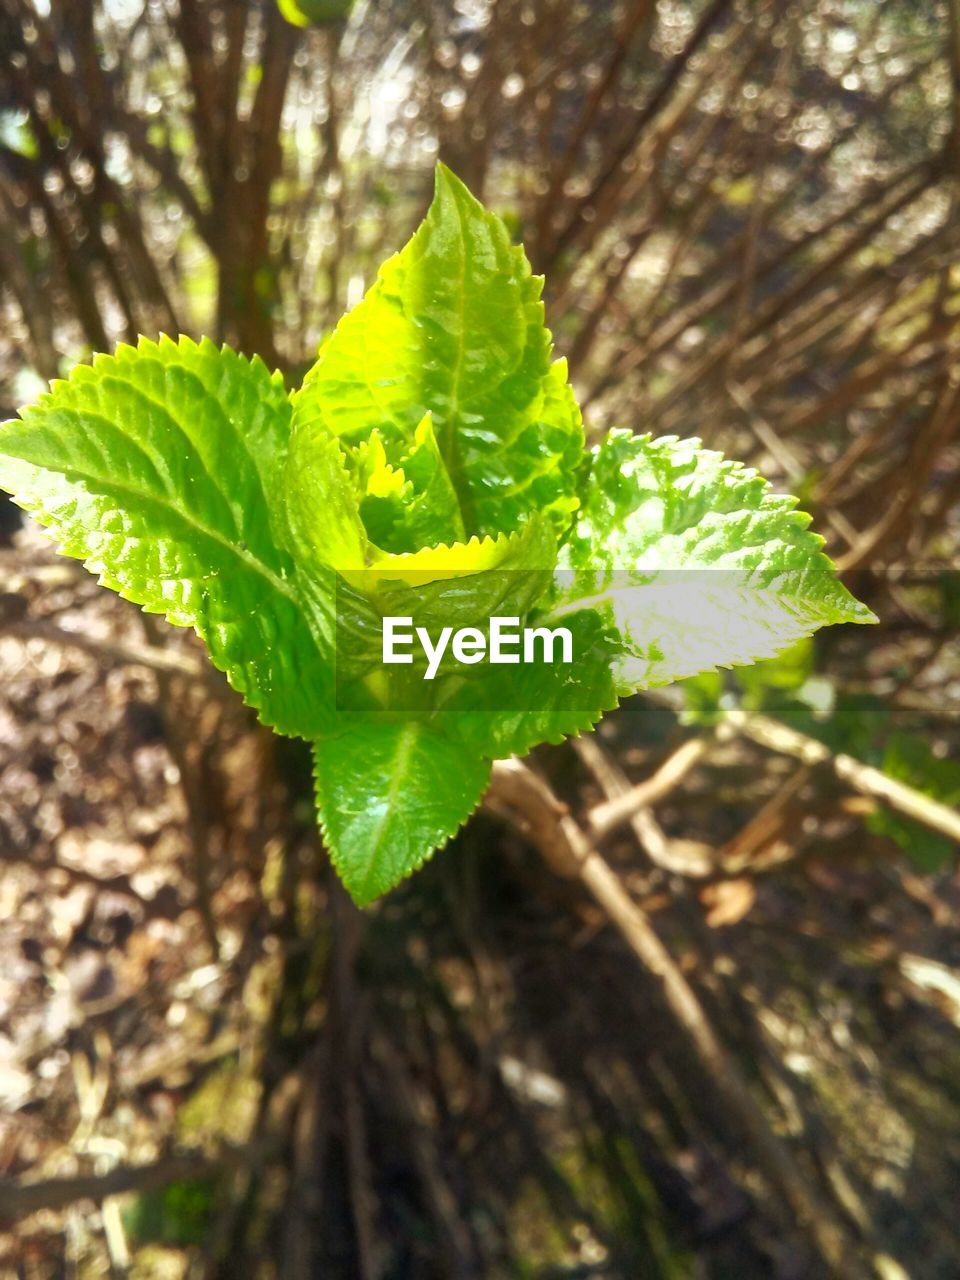 growth, green color, leaf, plant, nature, close-up, freshness, no people, focus on foreground, day, outdoors, beauty in nature, fragility, fern, tree